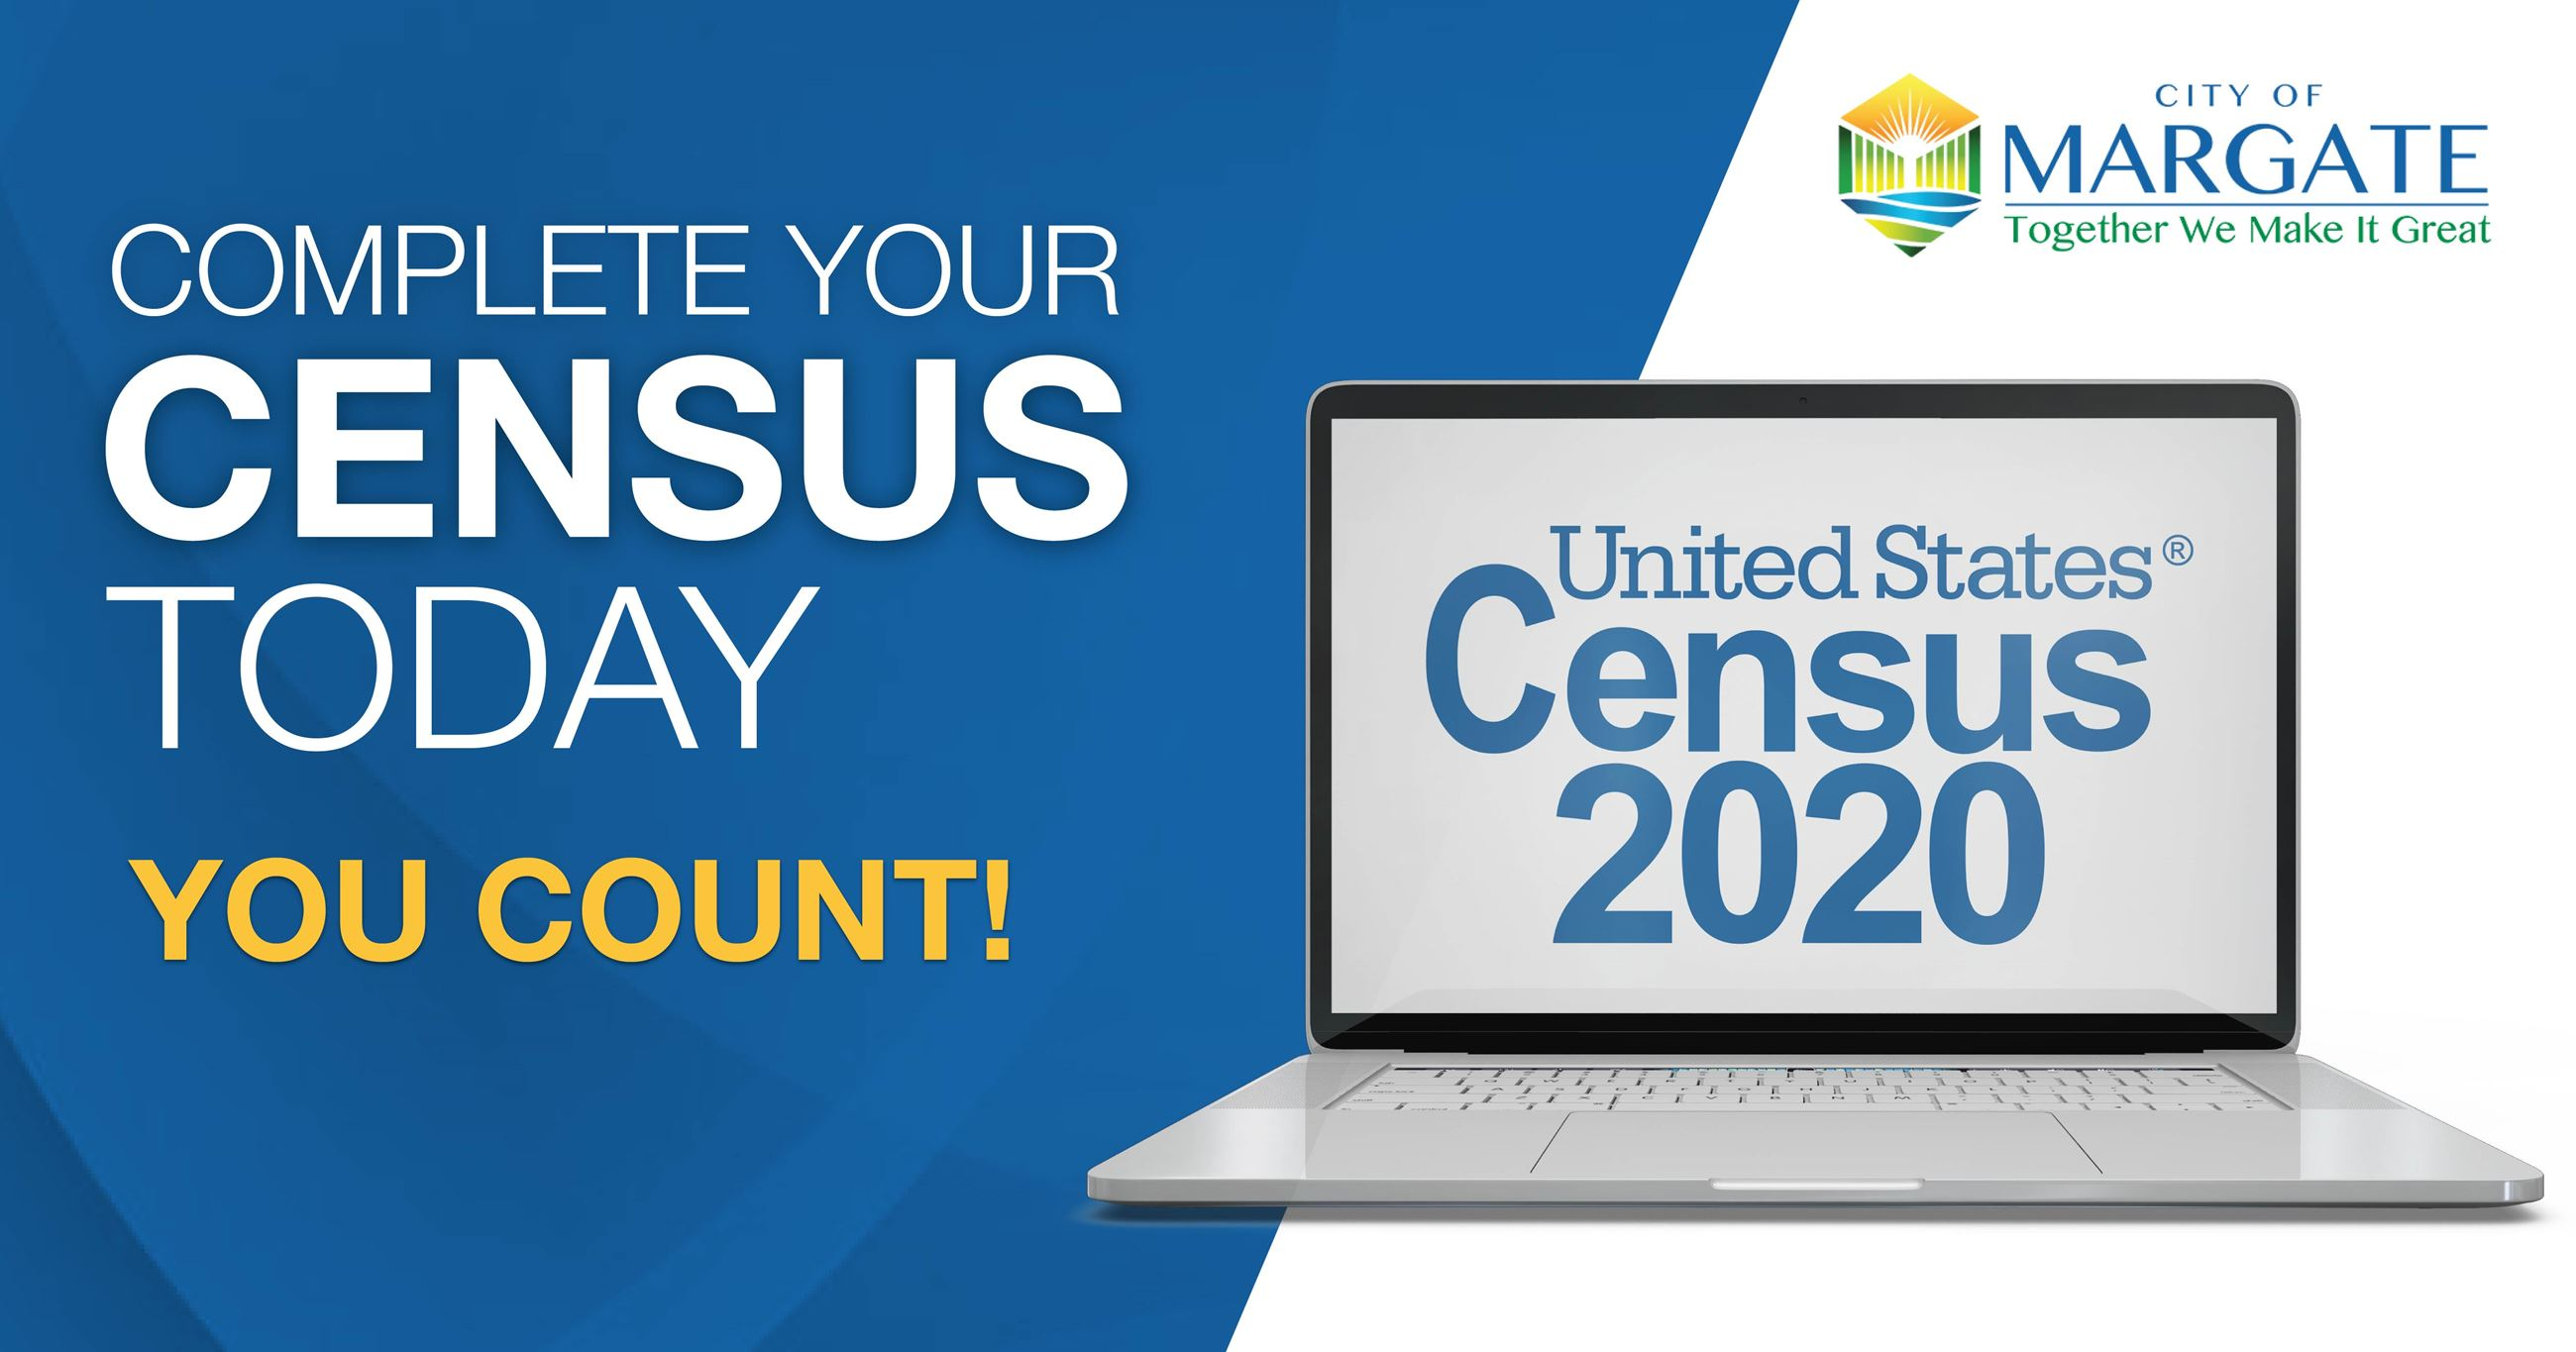 Complete your Census Opens in new window